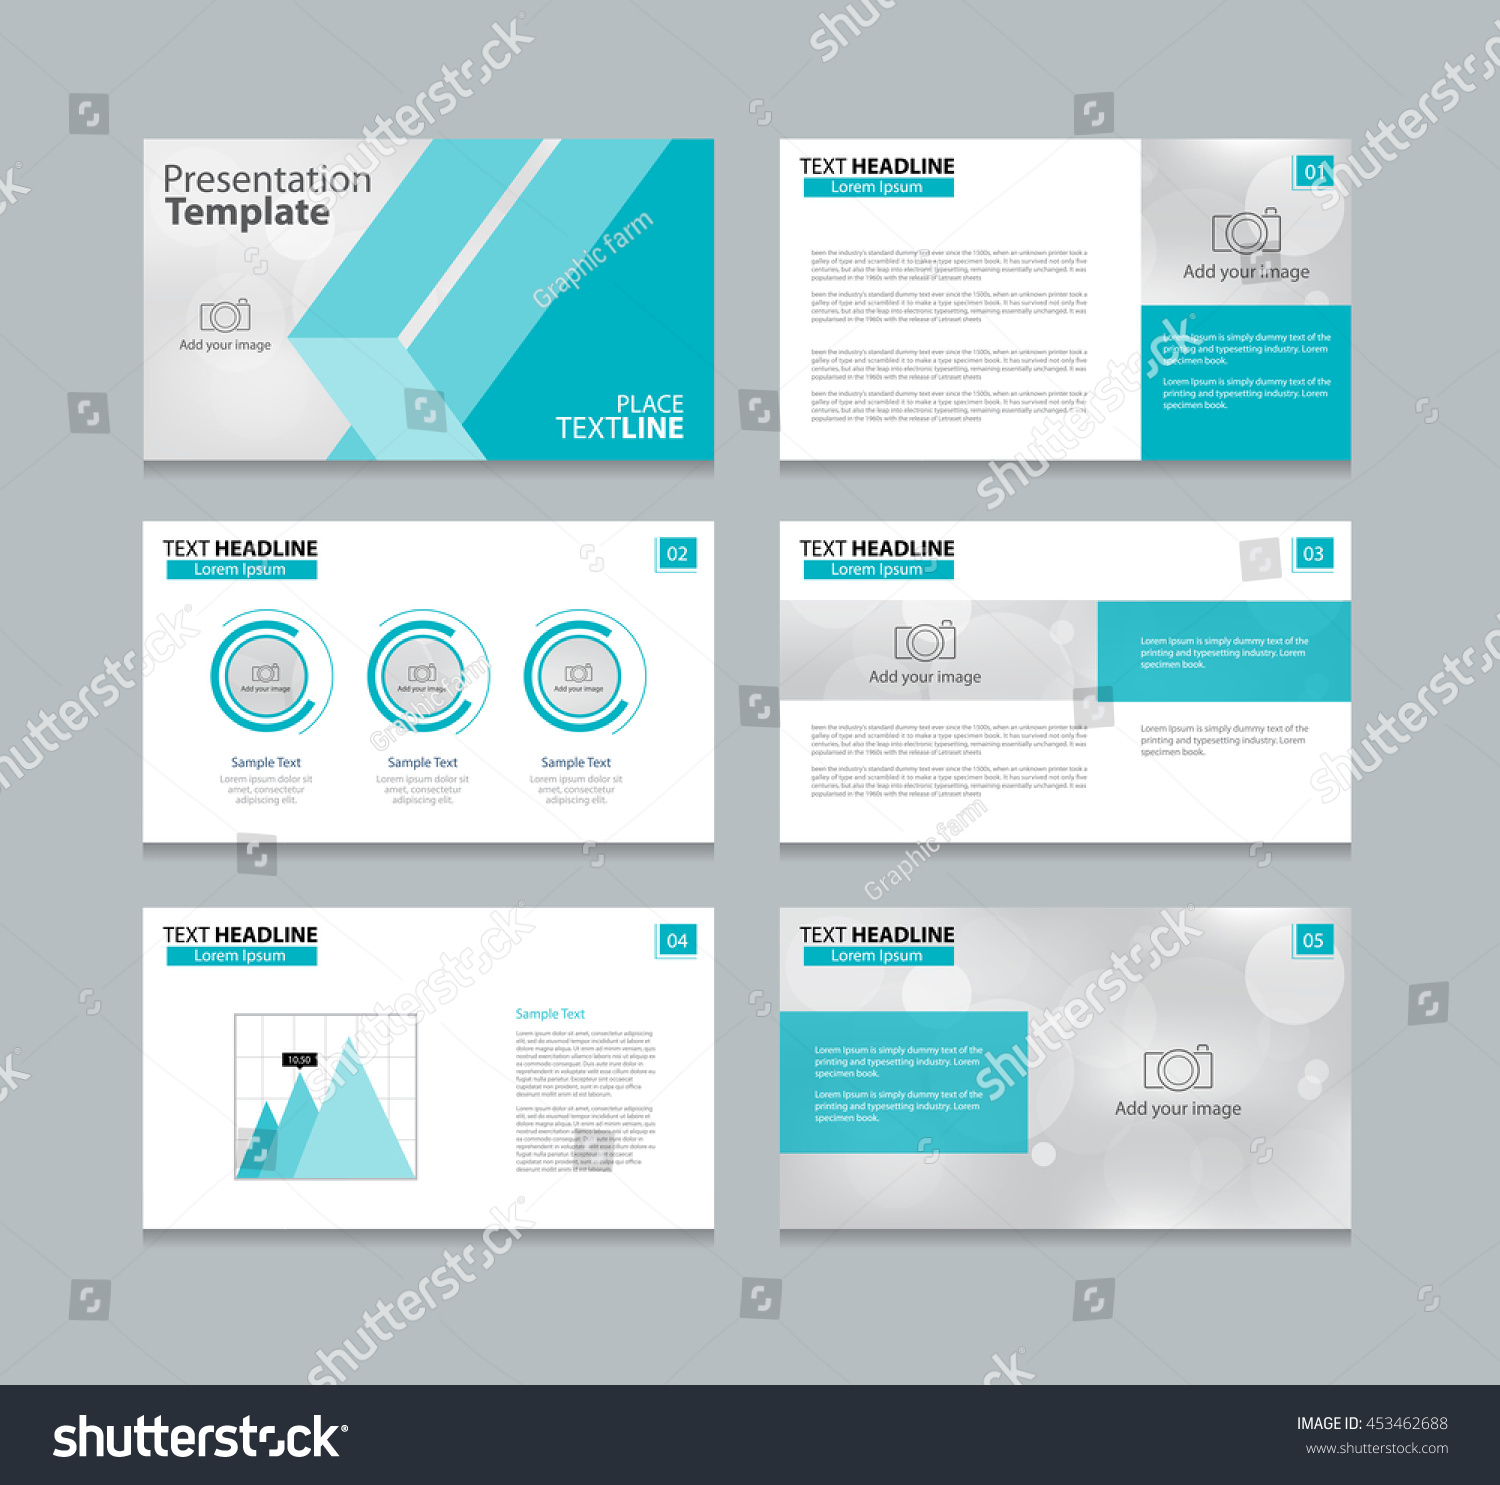 page layout design template presentation brochure stock vector 453462688 shutterstock. Black Bedroom Furniture Sets. Home Design Ideas